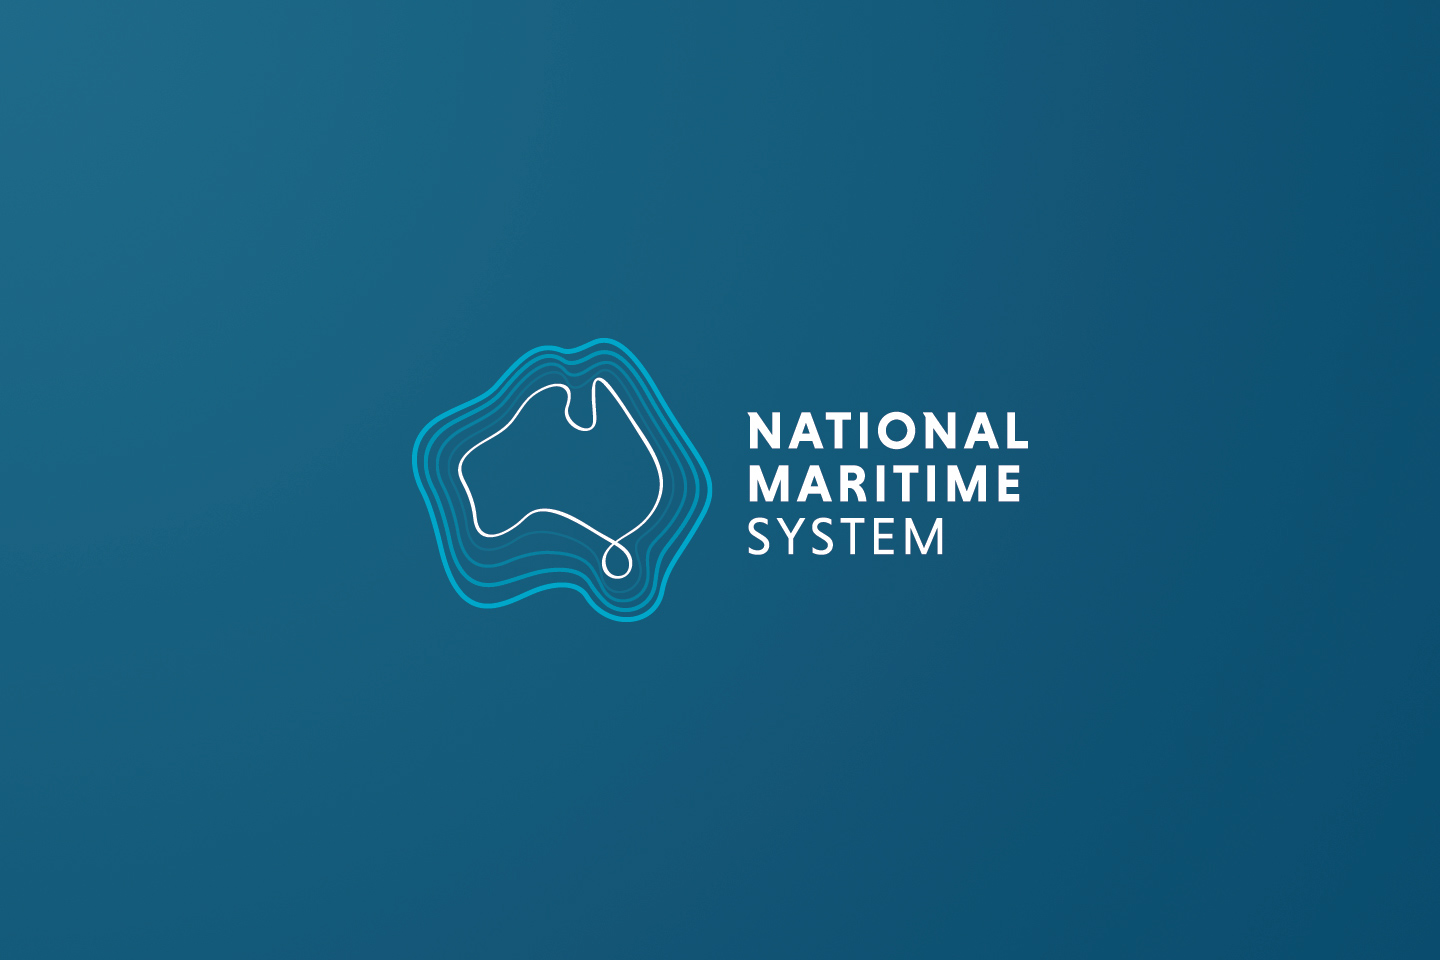 National Maritime System logo